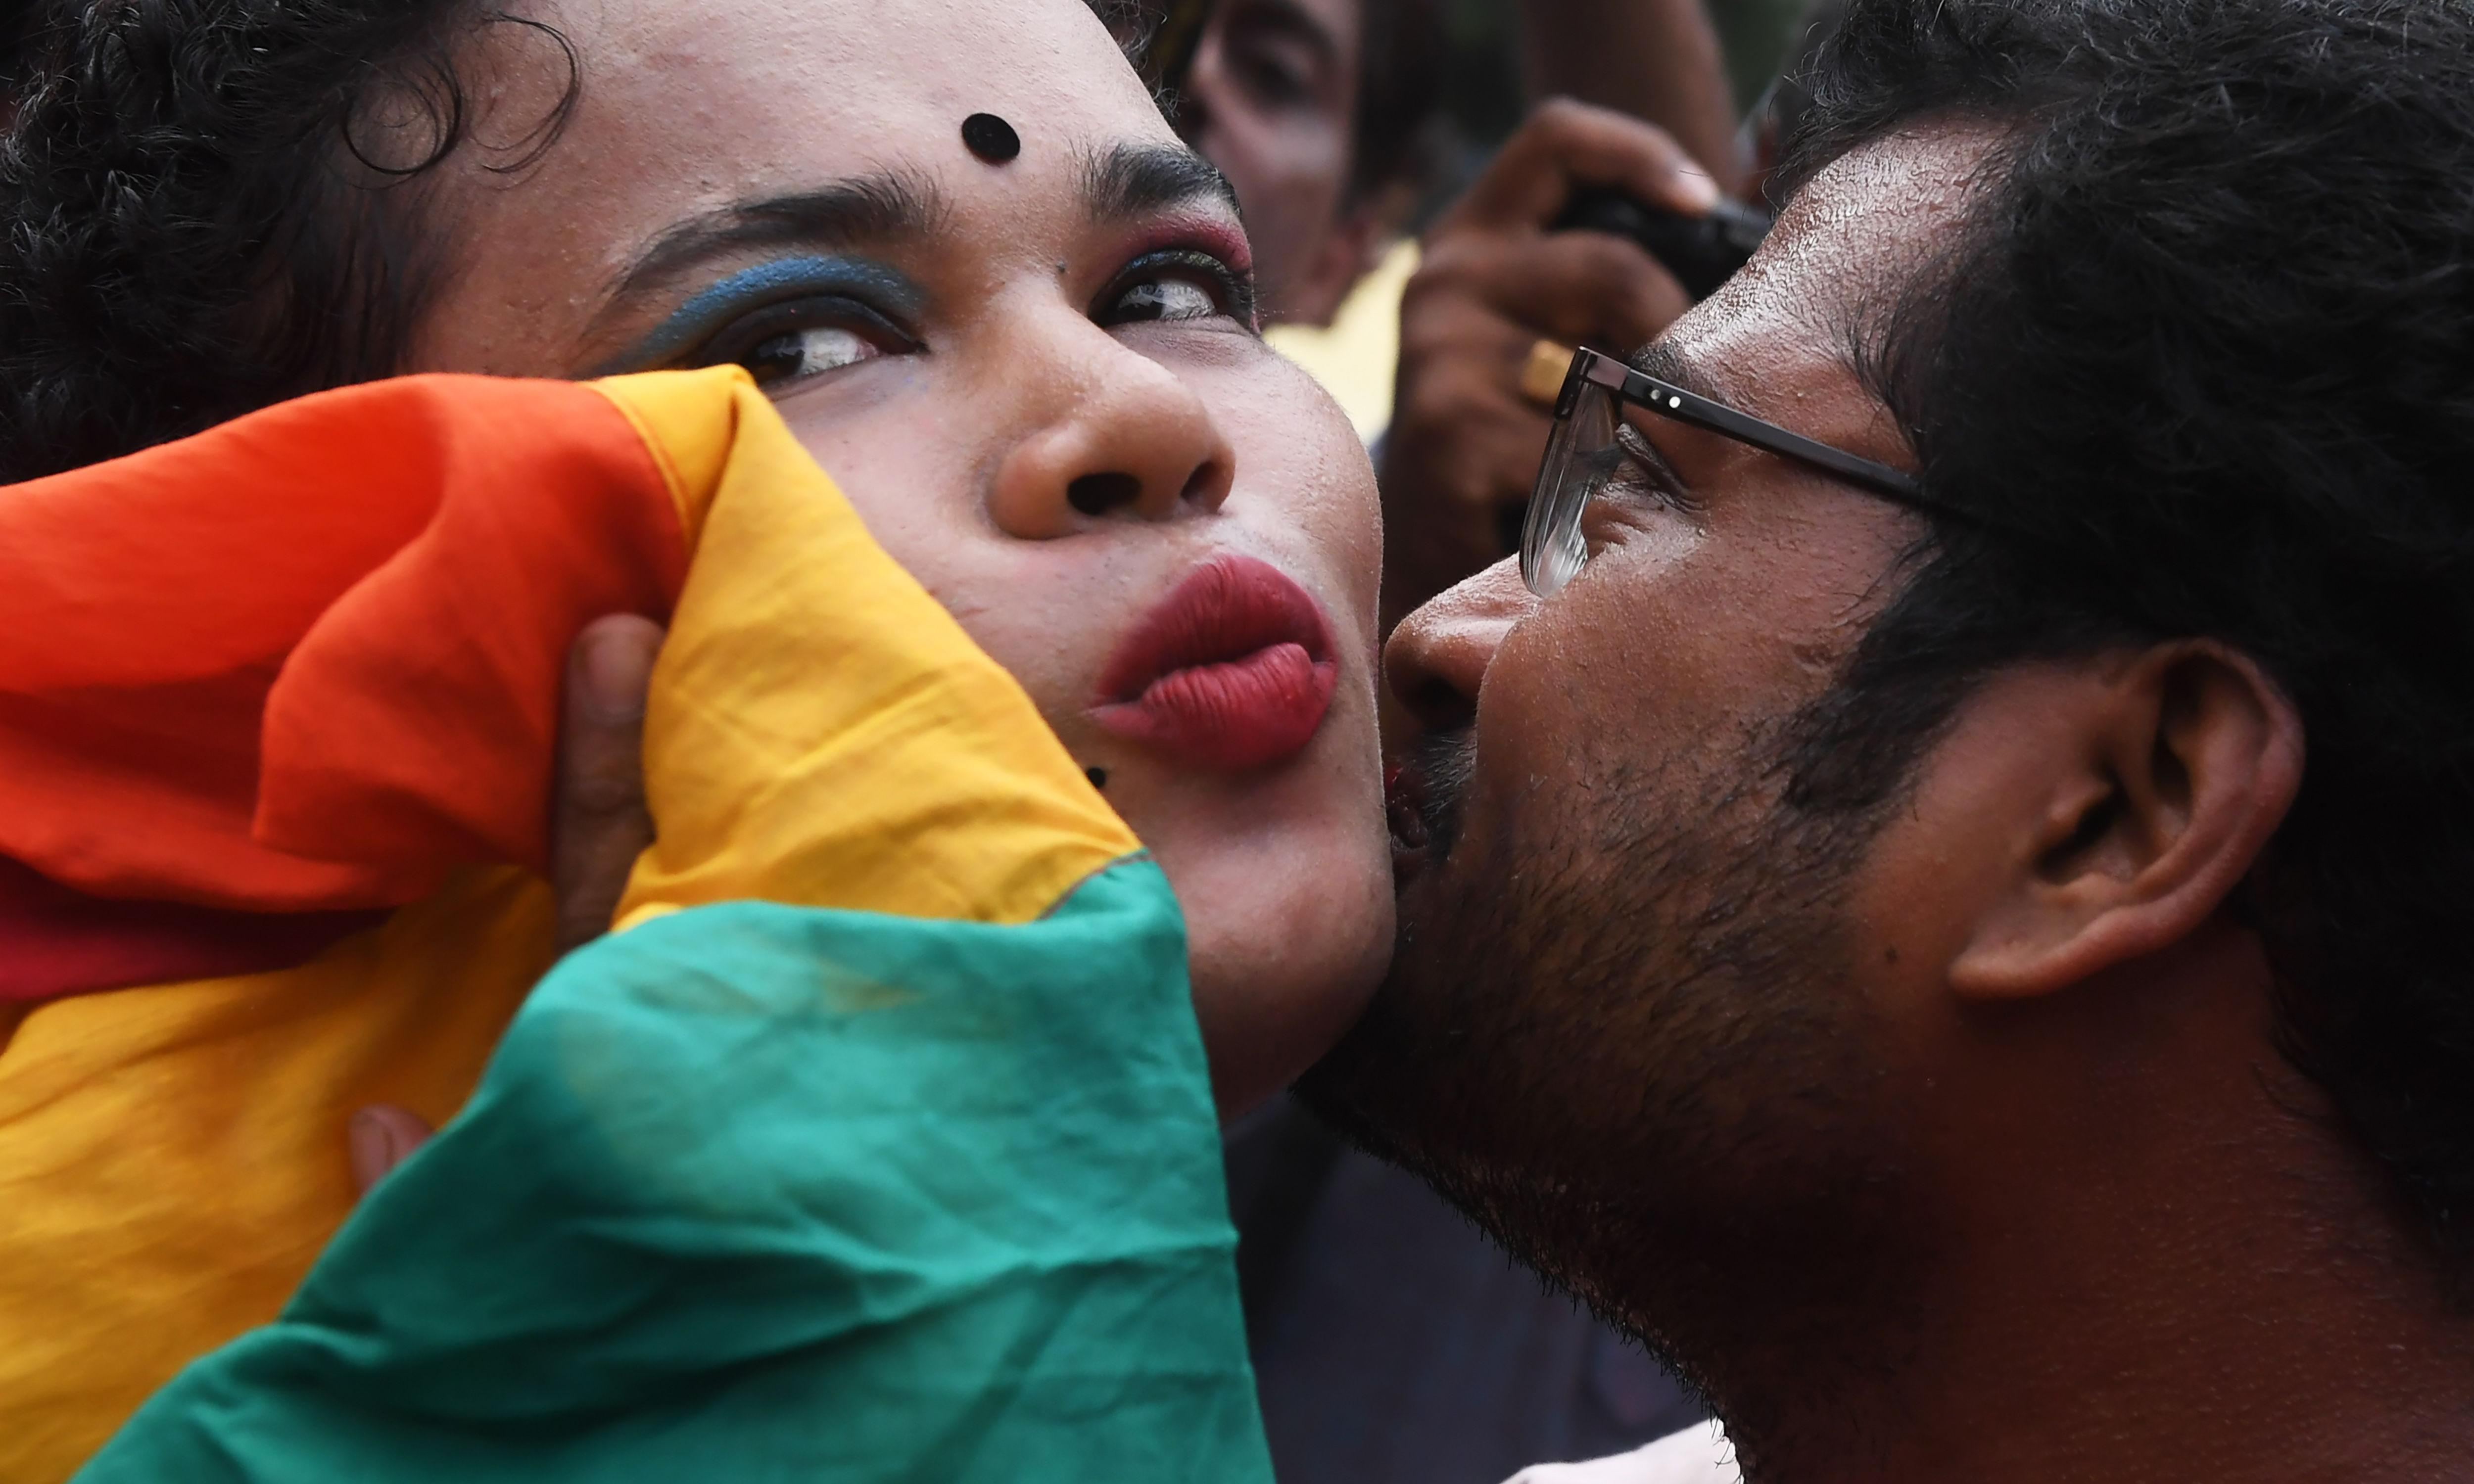 This is the start of a new era for India's LGBT communities